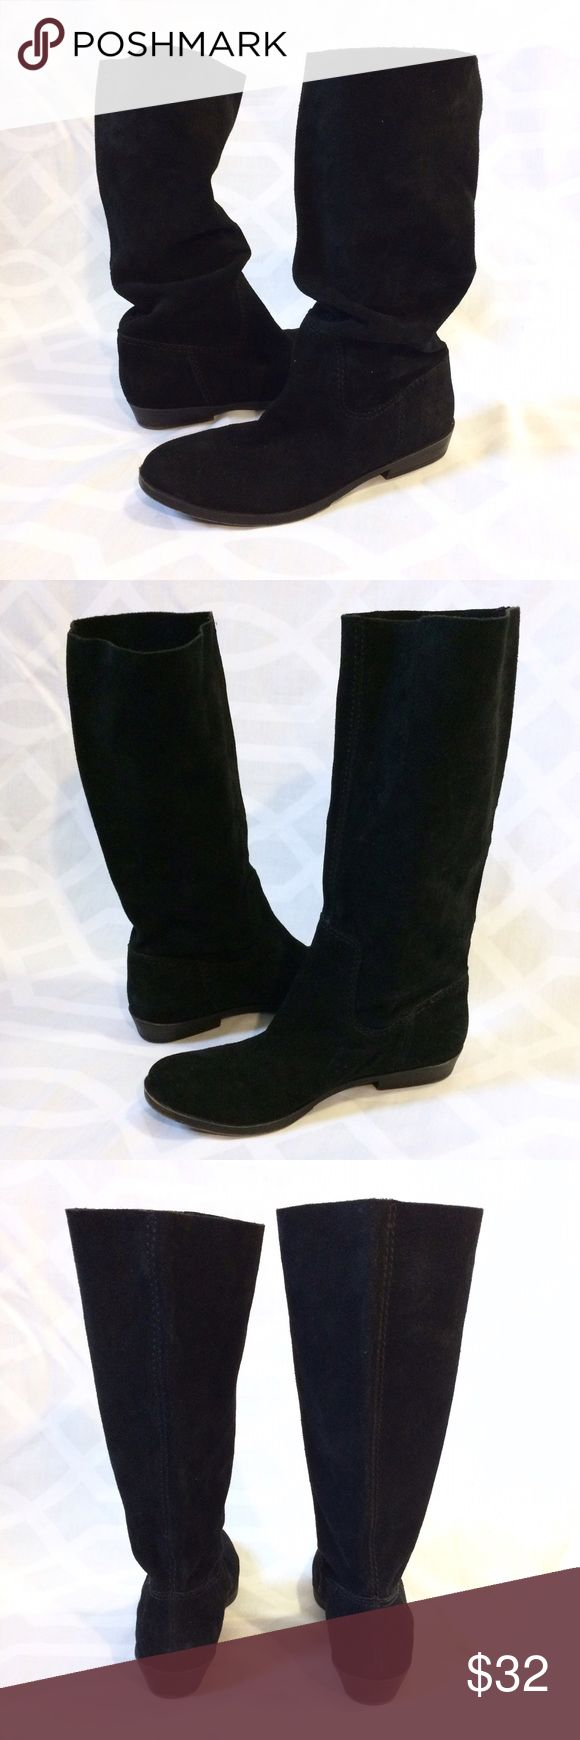 ✨NWOT✨ NINE WEST Black Suede Slouch Boots NINE WEST Black Suede Mid-Calf/Below the Knee Boots. Perfect Boho Chic All Year Round.  Condition: New/NWOT, factory fading on sole.   Material: Genuine Leather Suede Upper, manmade Balance  Style: NWFROLLIC Size: 7.5 Heel Height: 1in Sole Height: 3/8in Shaft Height: 13in Nine West Shoes Combat & Moto Boots